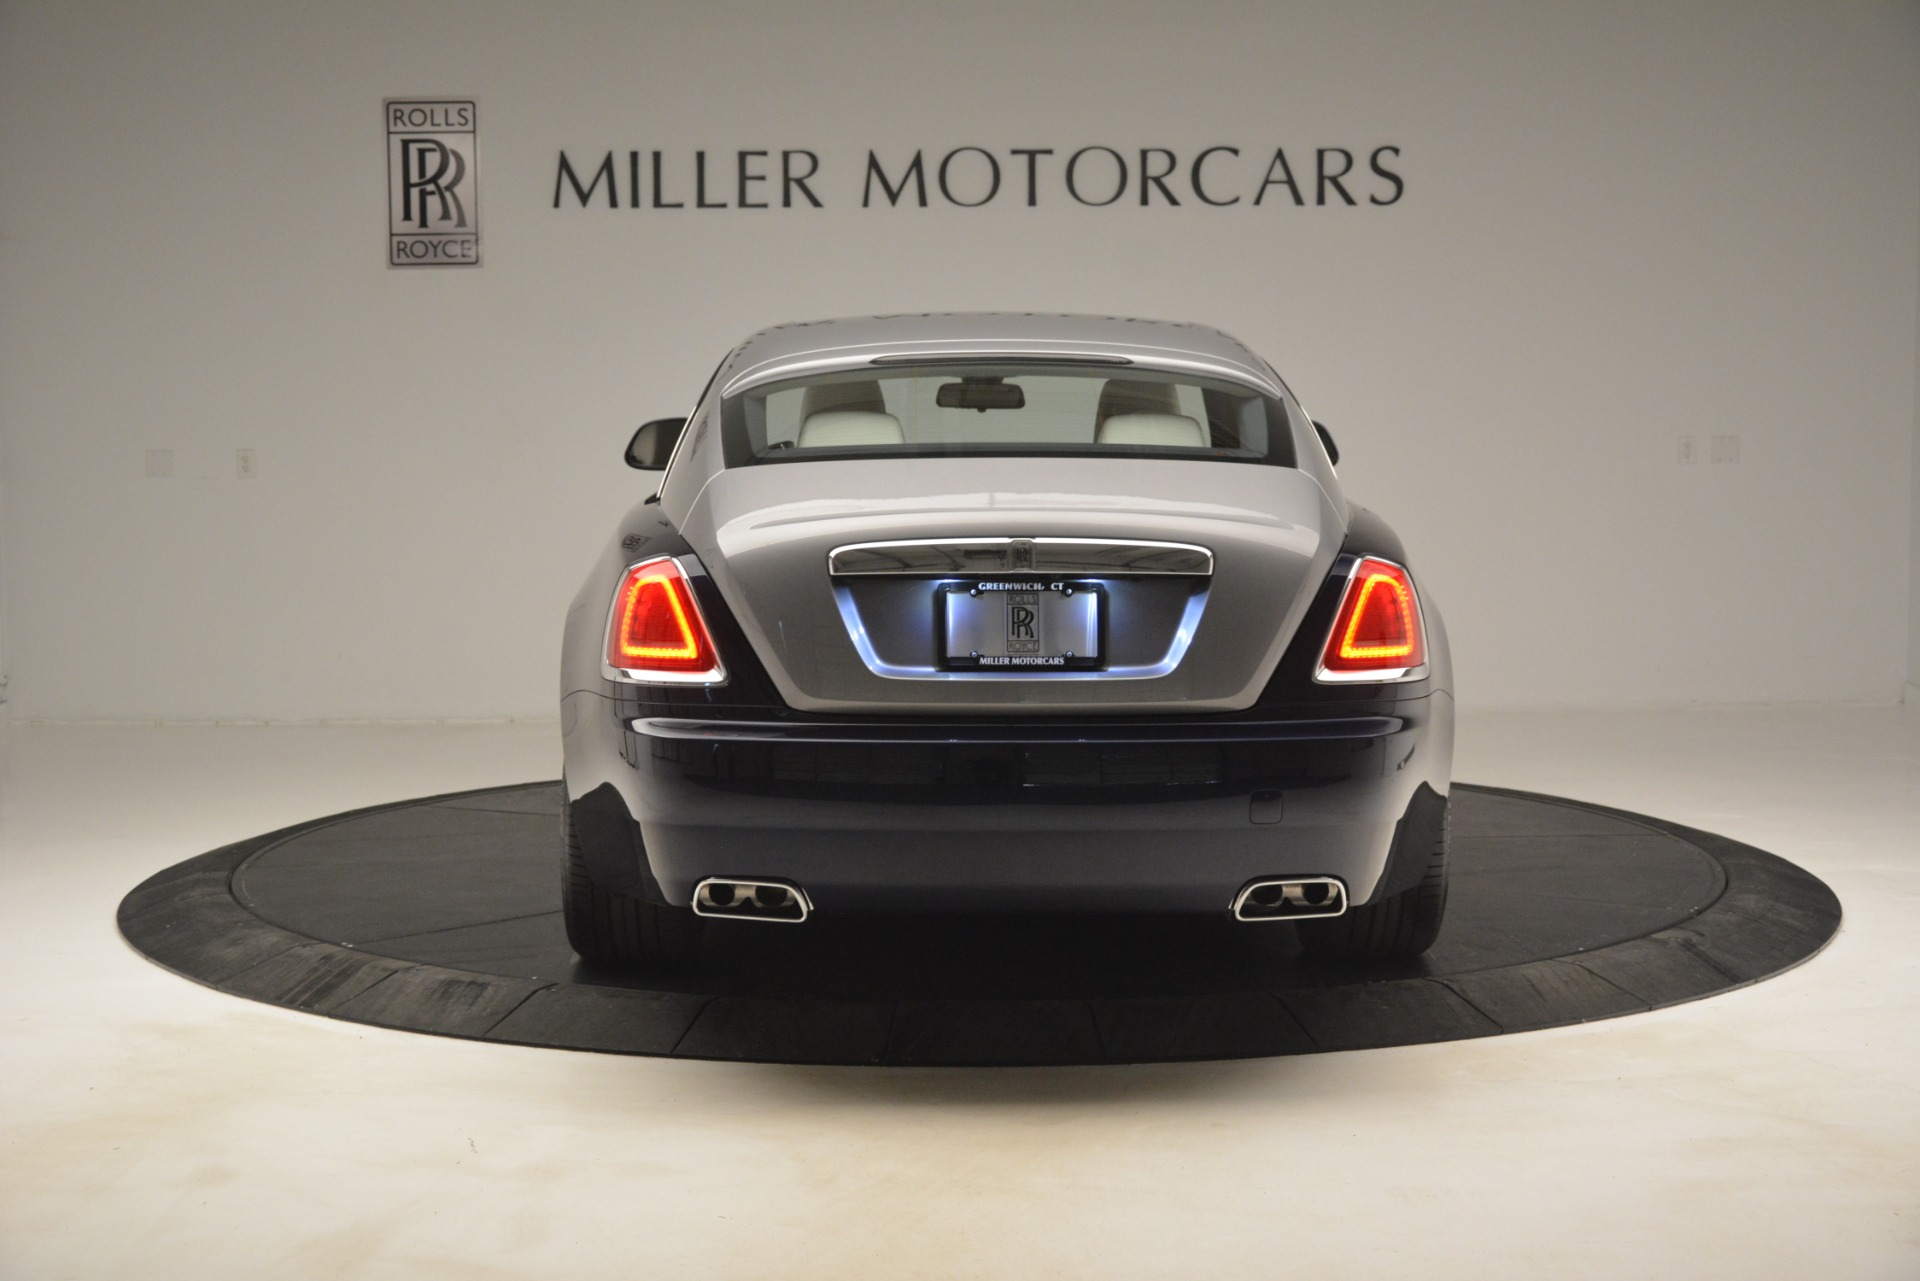 New 2019 Rolls-Royce Wraith  For Sale In Greenwich, CT 2686_p7